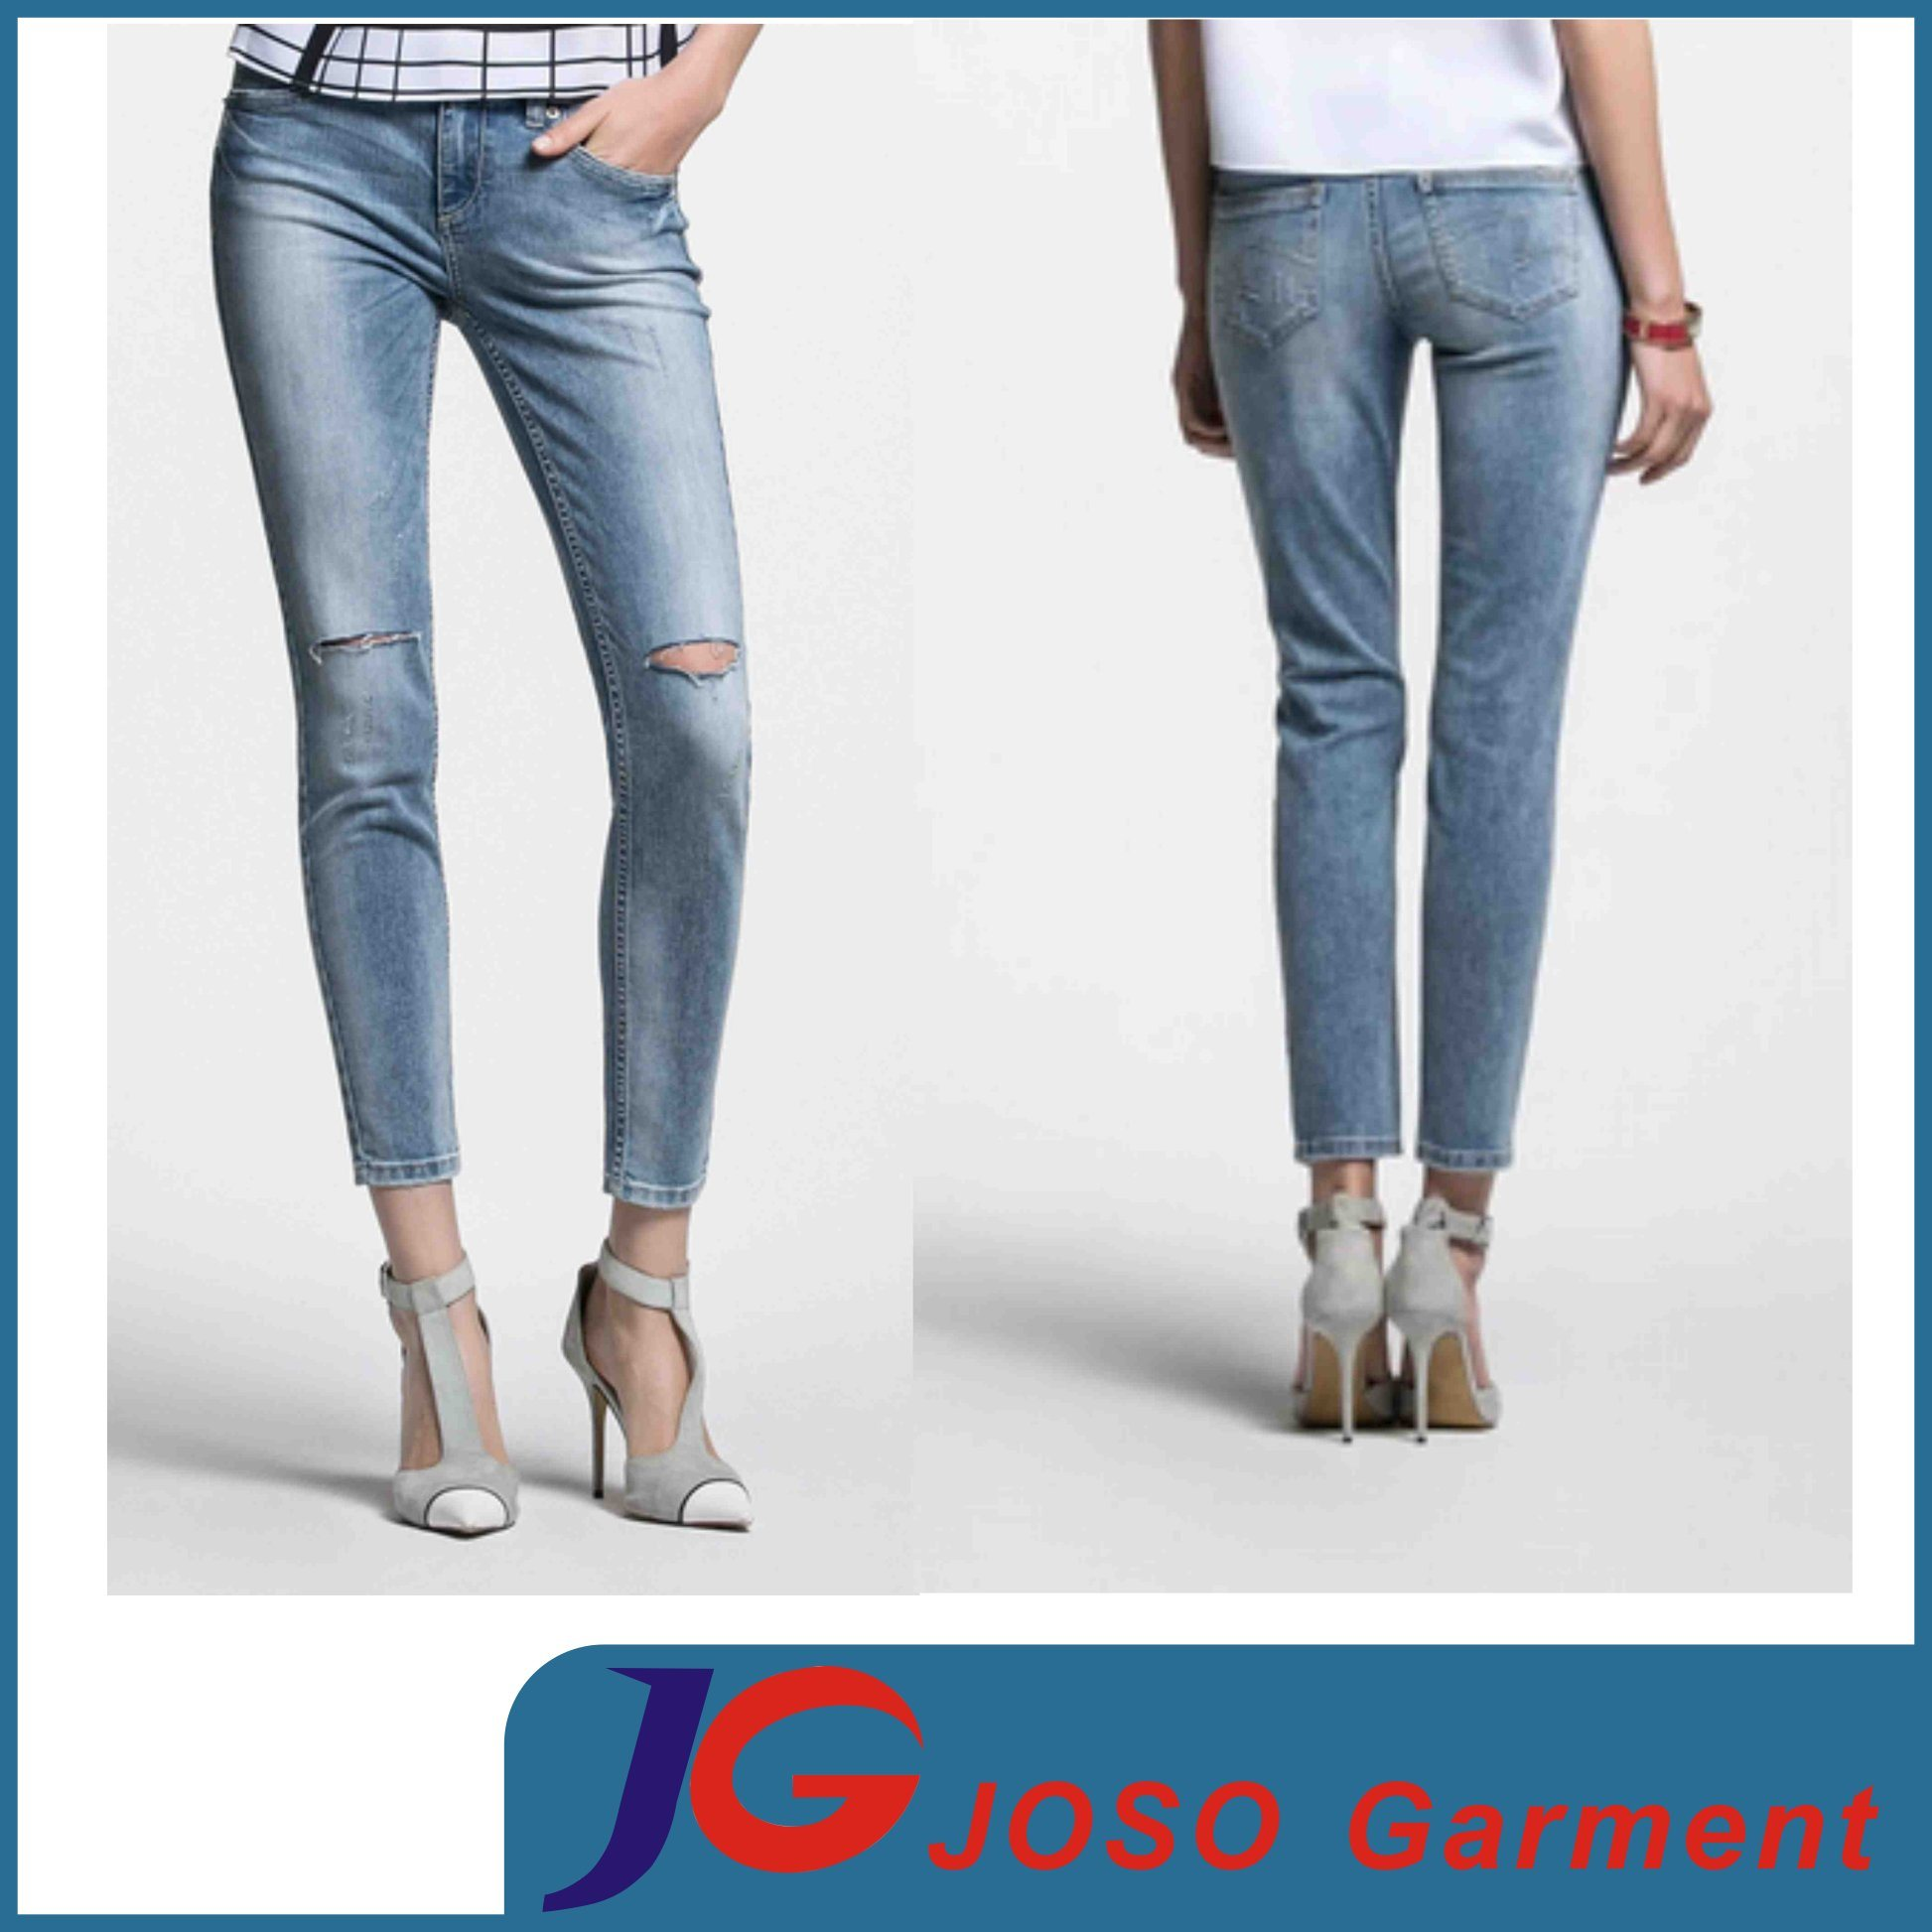 Best Fitting Jeans For Women - Jeans Am